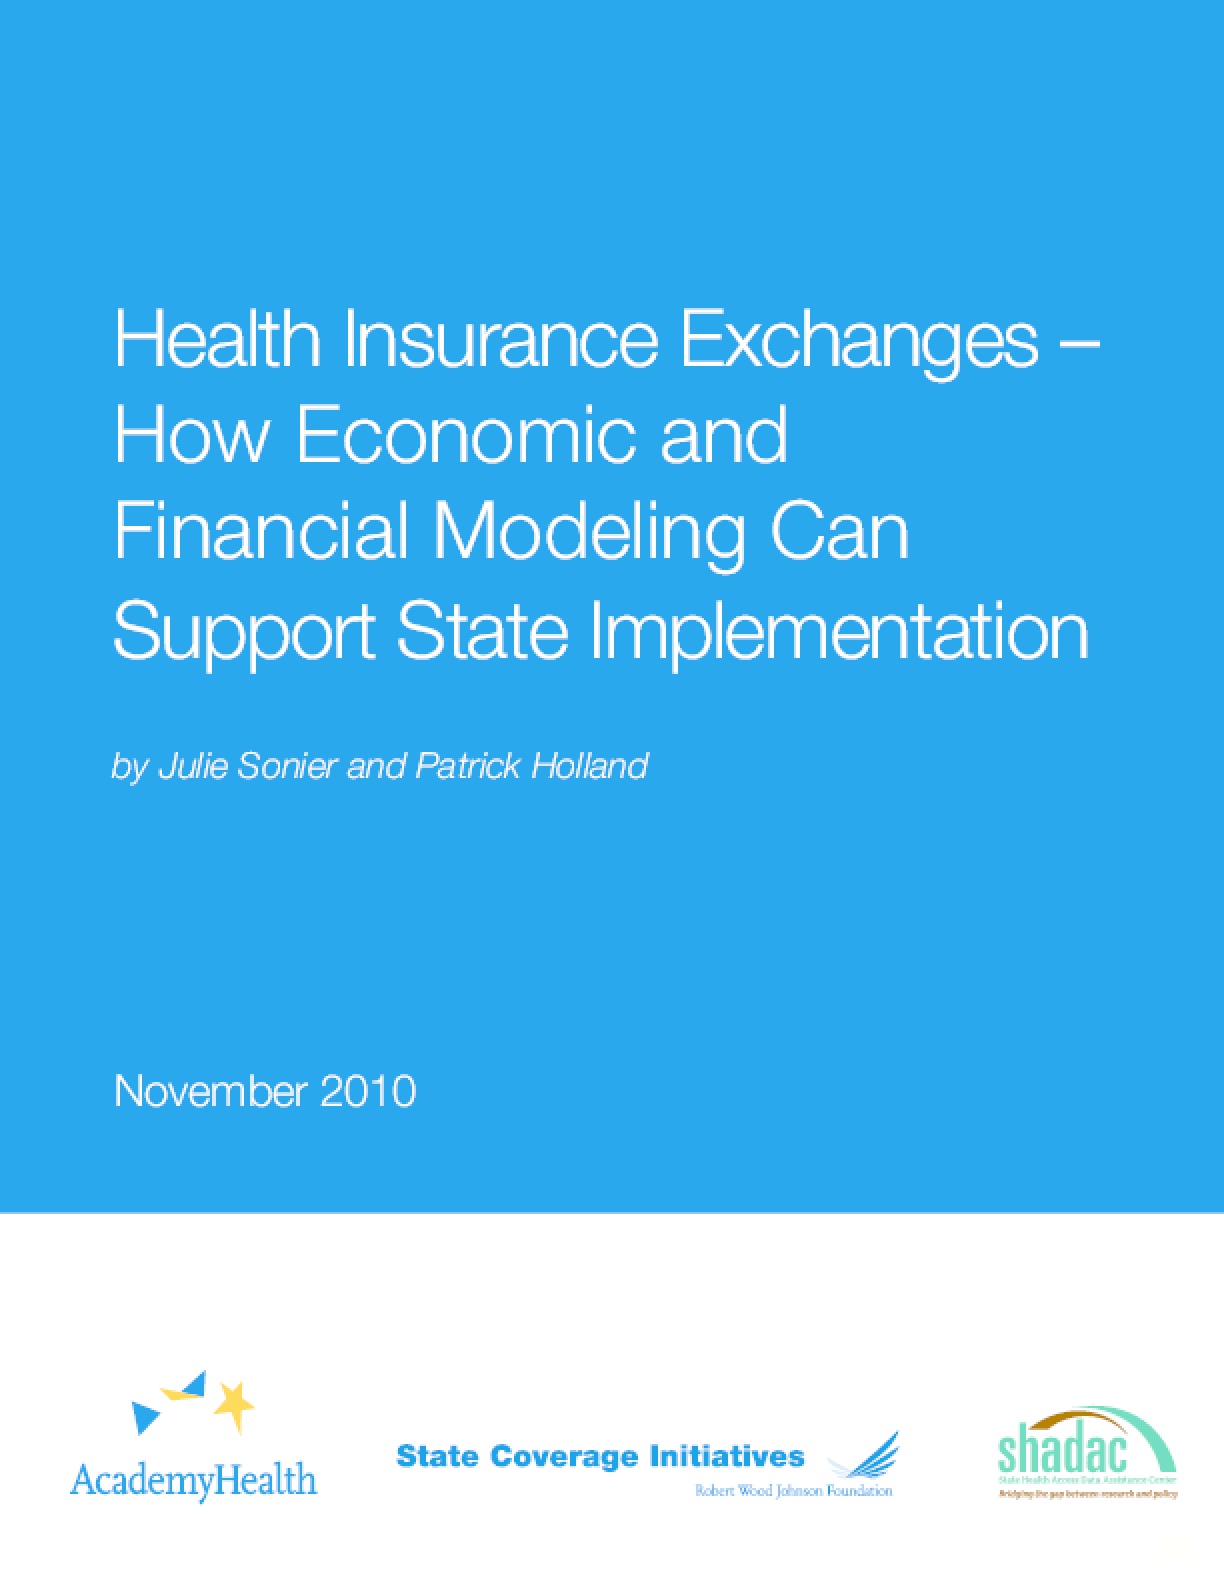 Health Insurance Exchanges: How Economic and Financial